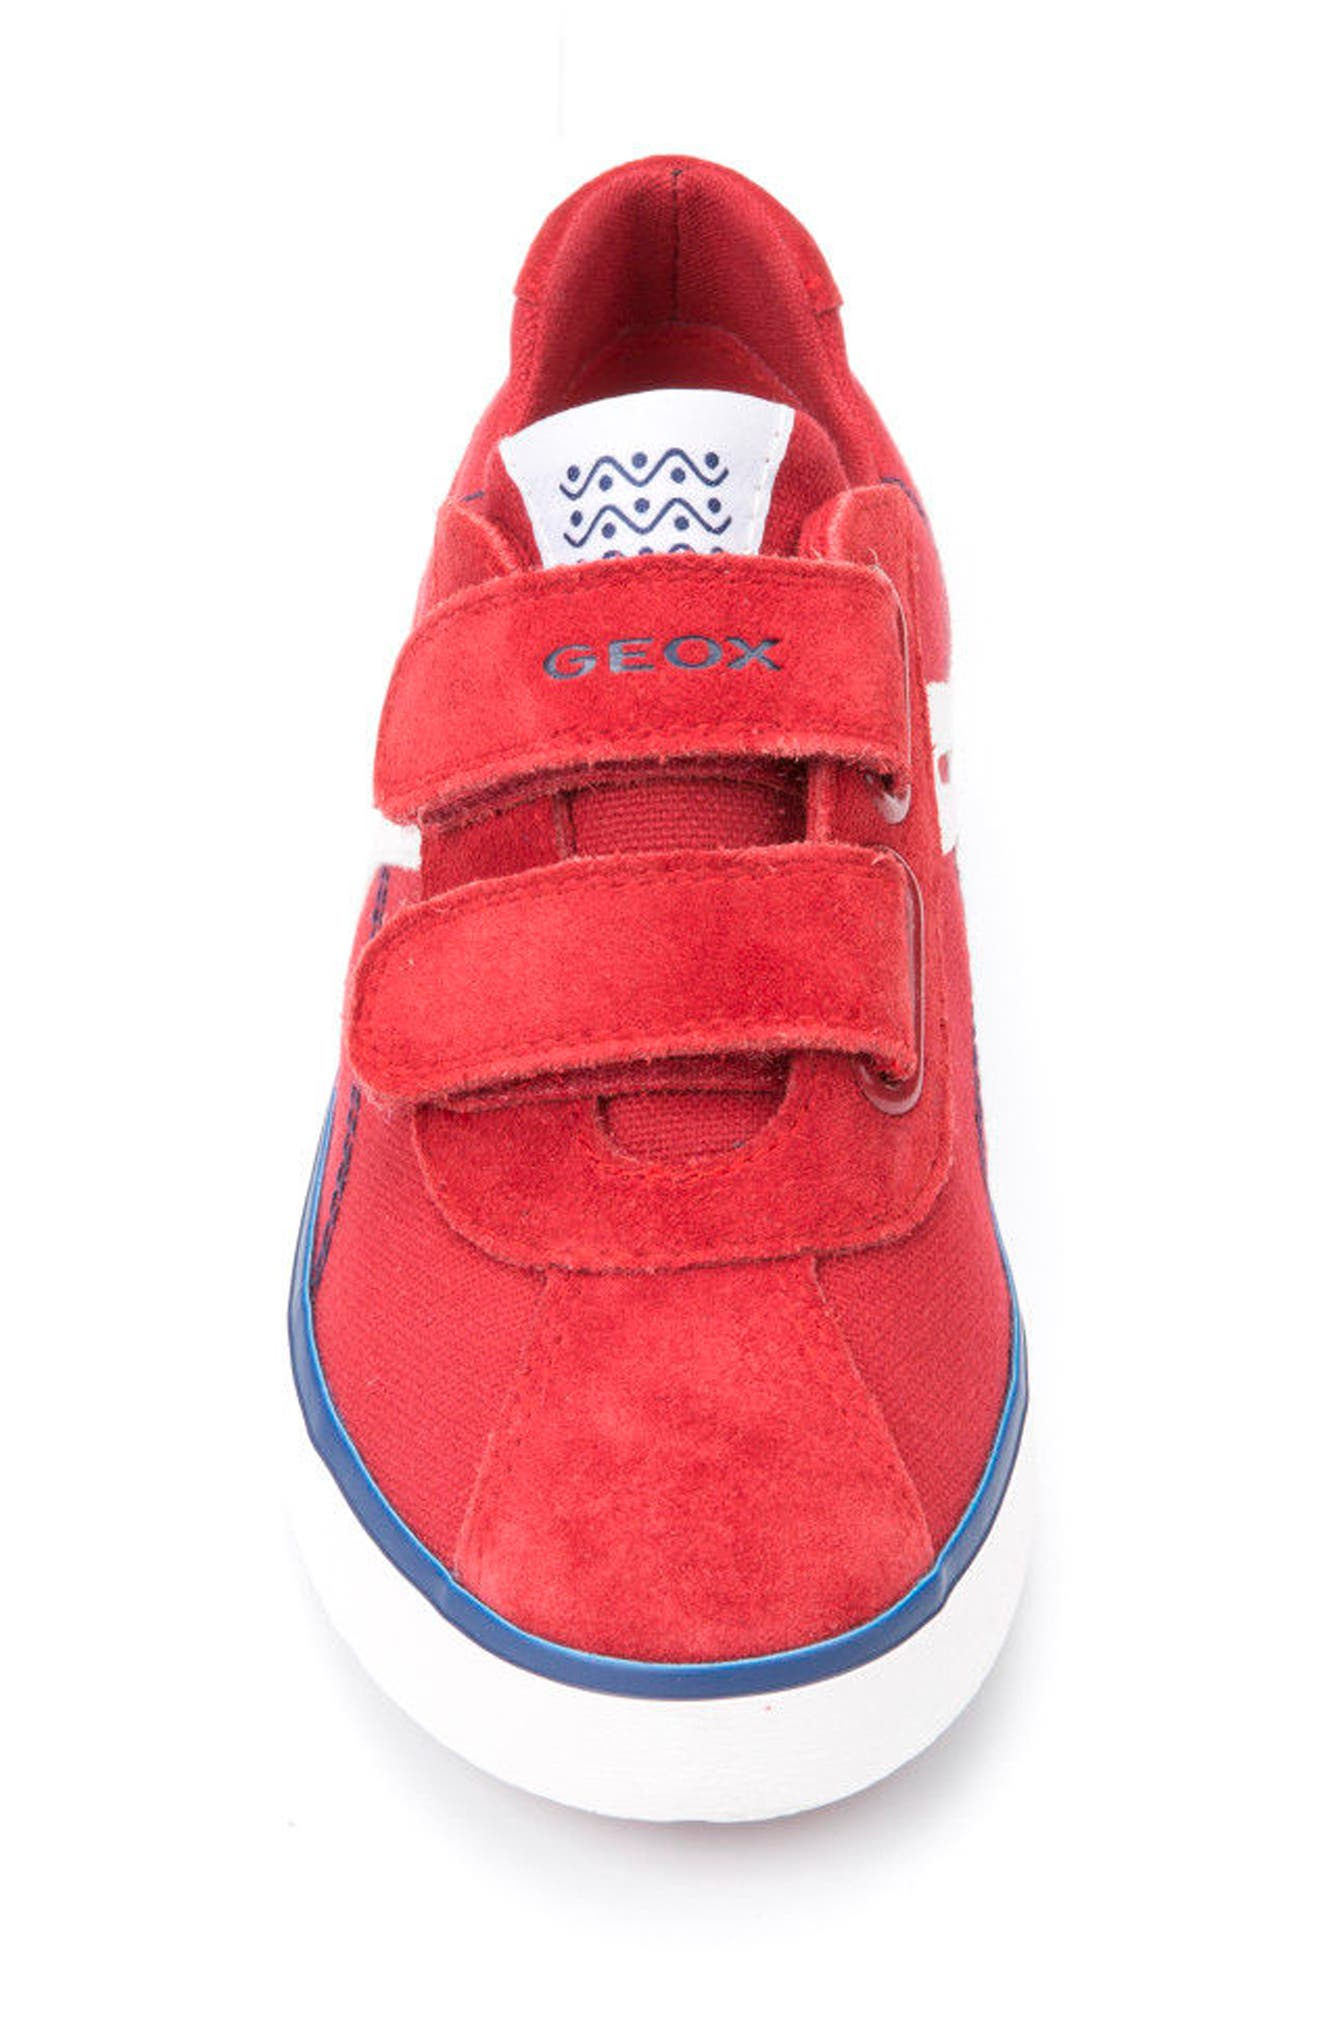 Kilwi Low Top Sneaker,                             Alternate thumbnail 4, color,                             Dark Red/ Navy